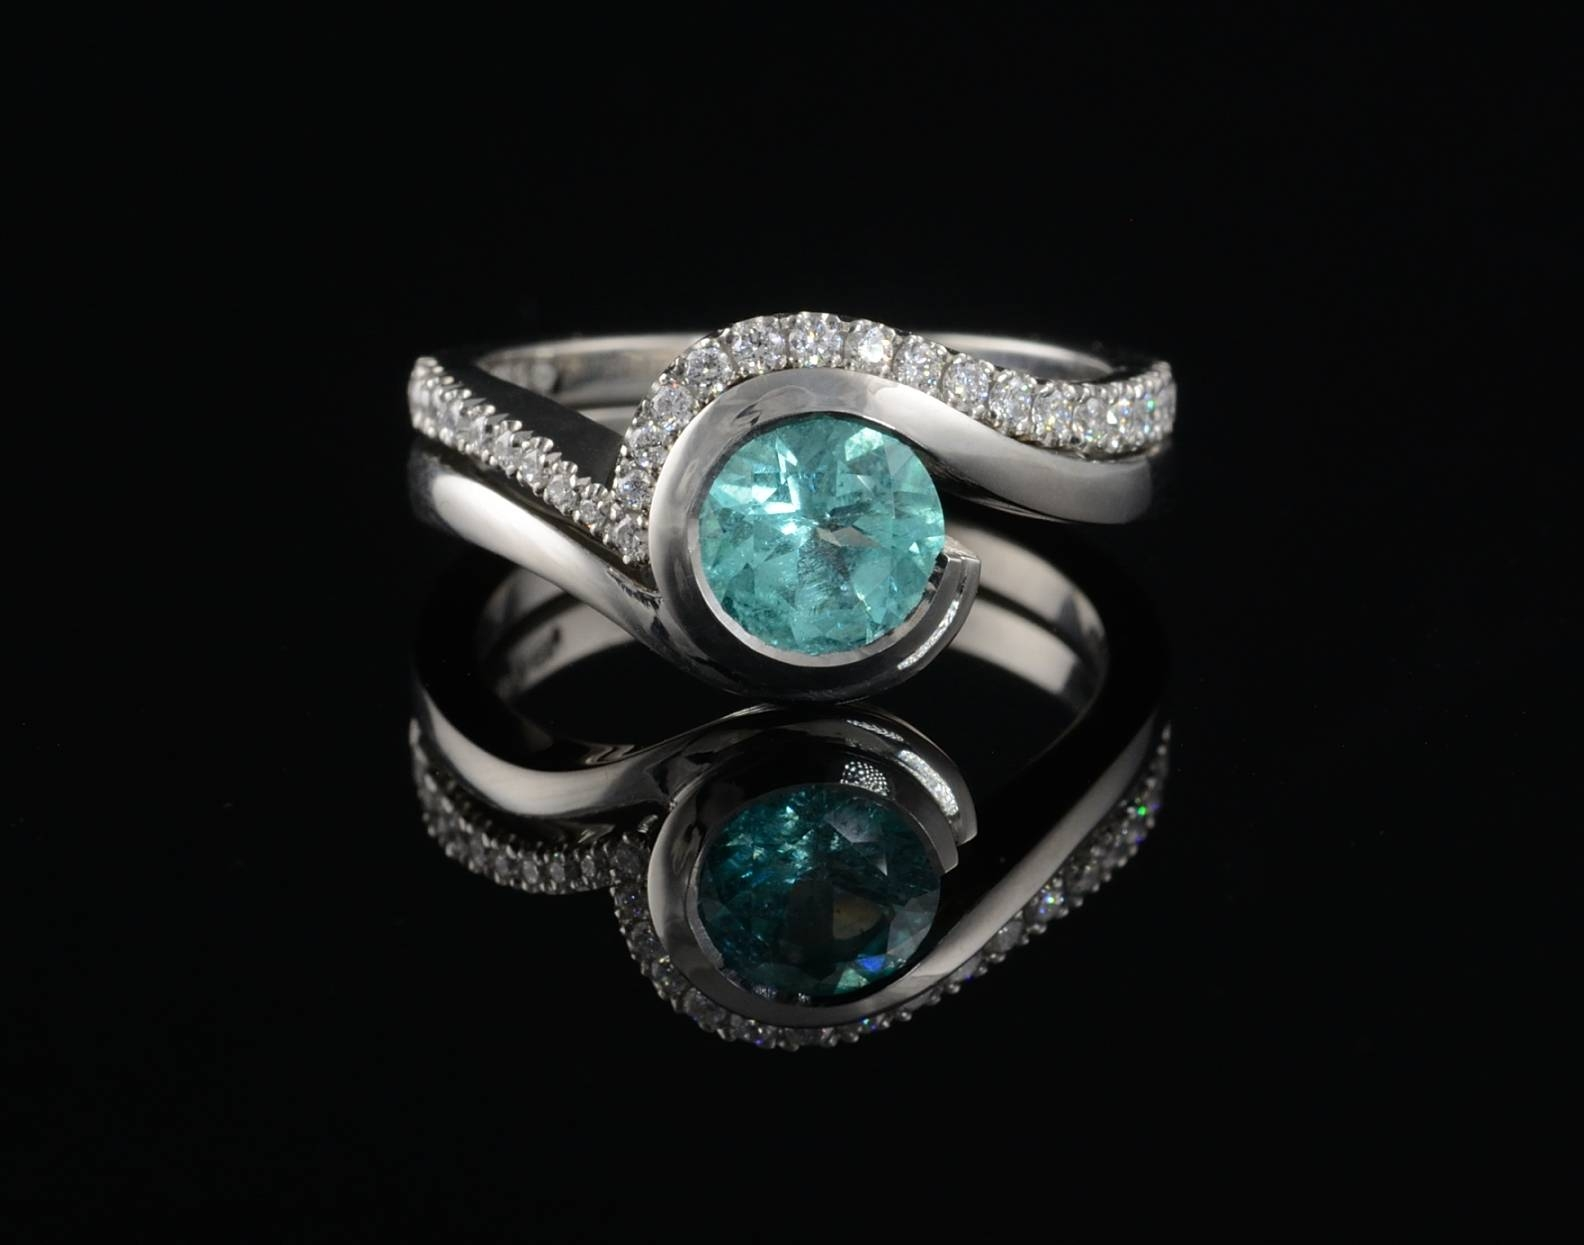 Engagement Rings : Celtic Engagement Rings Awesome Engagement Within Emerald Celtic Engagement Rings (Gallery 8 of 15)